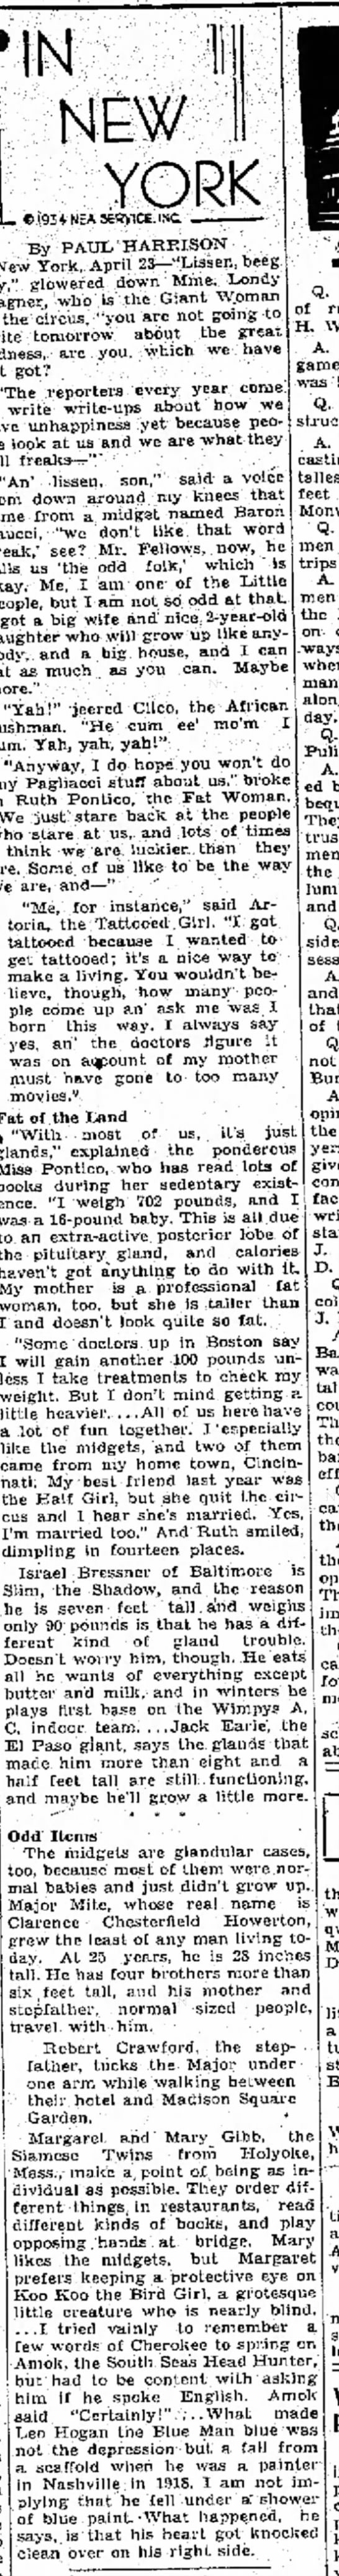 23Apr1934 Article about the odd folk in the circus -